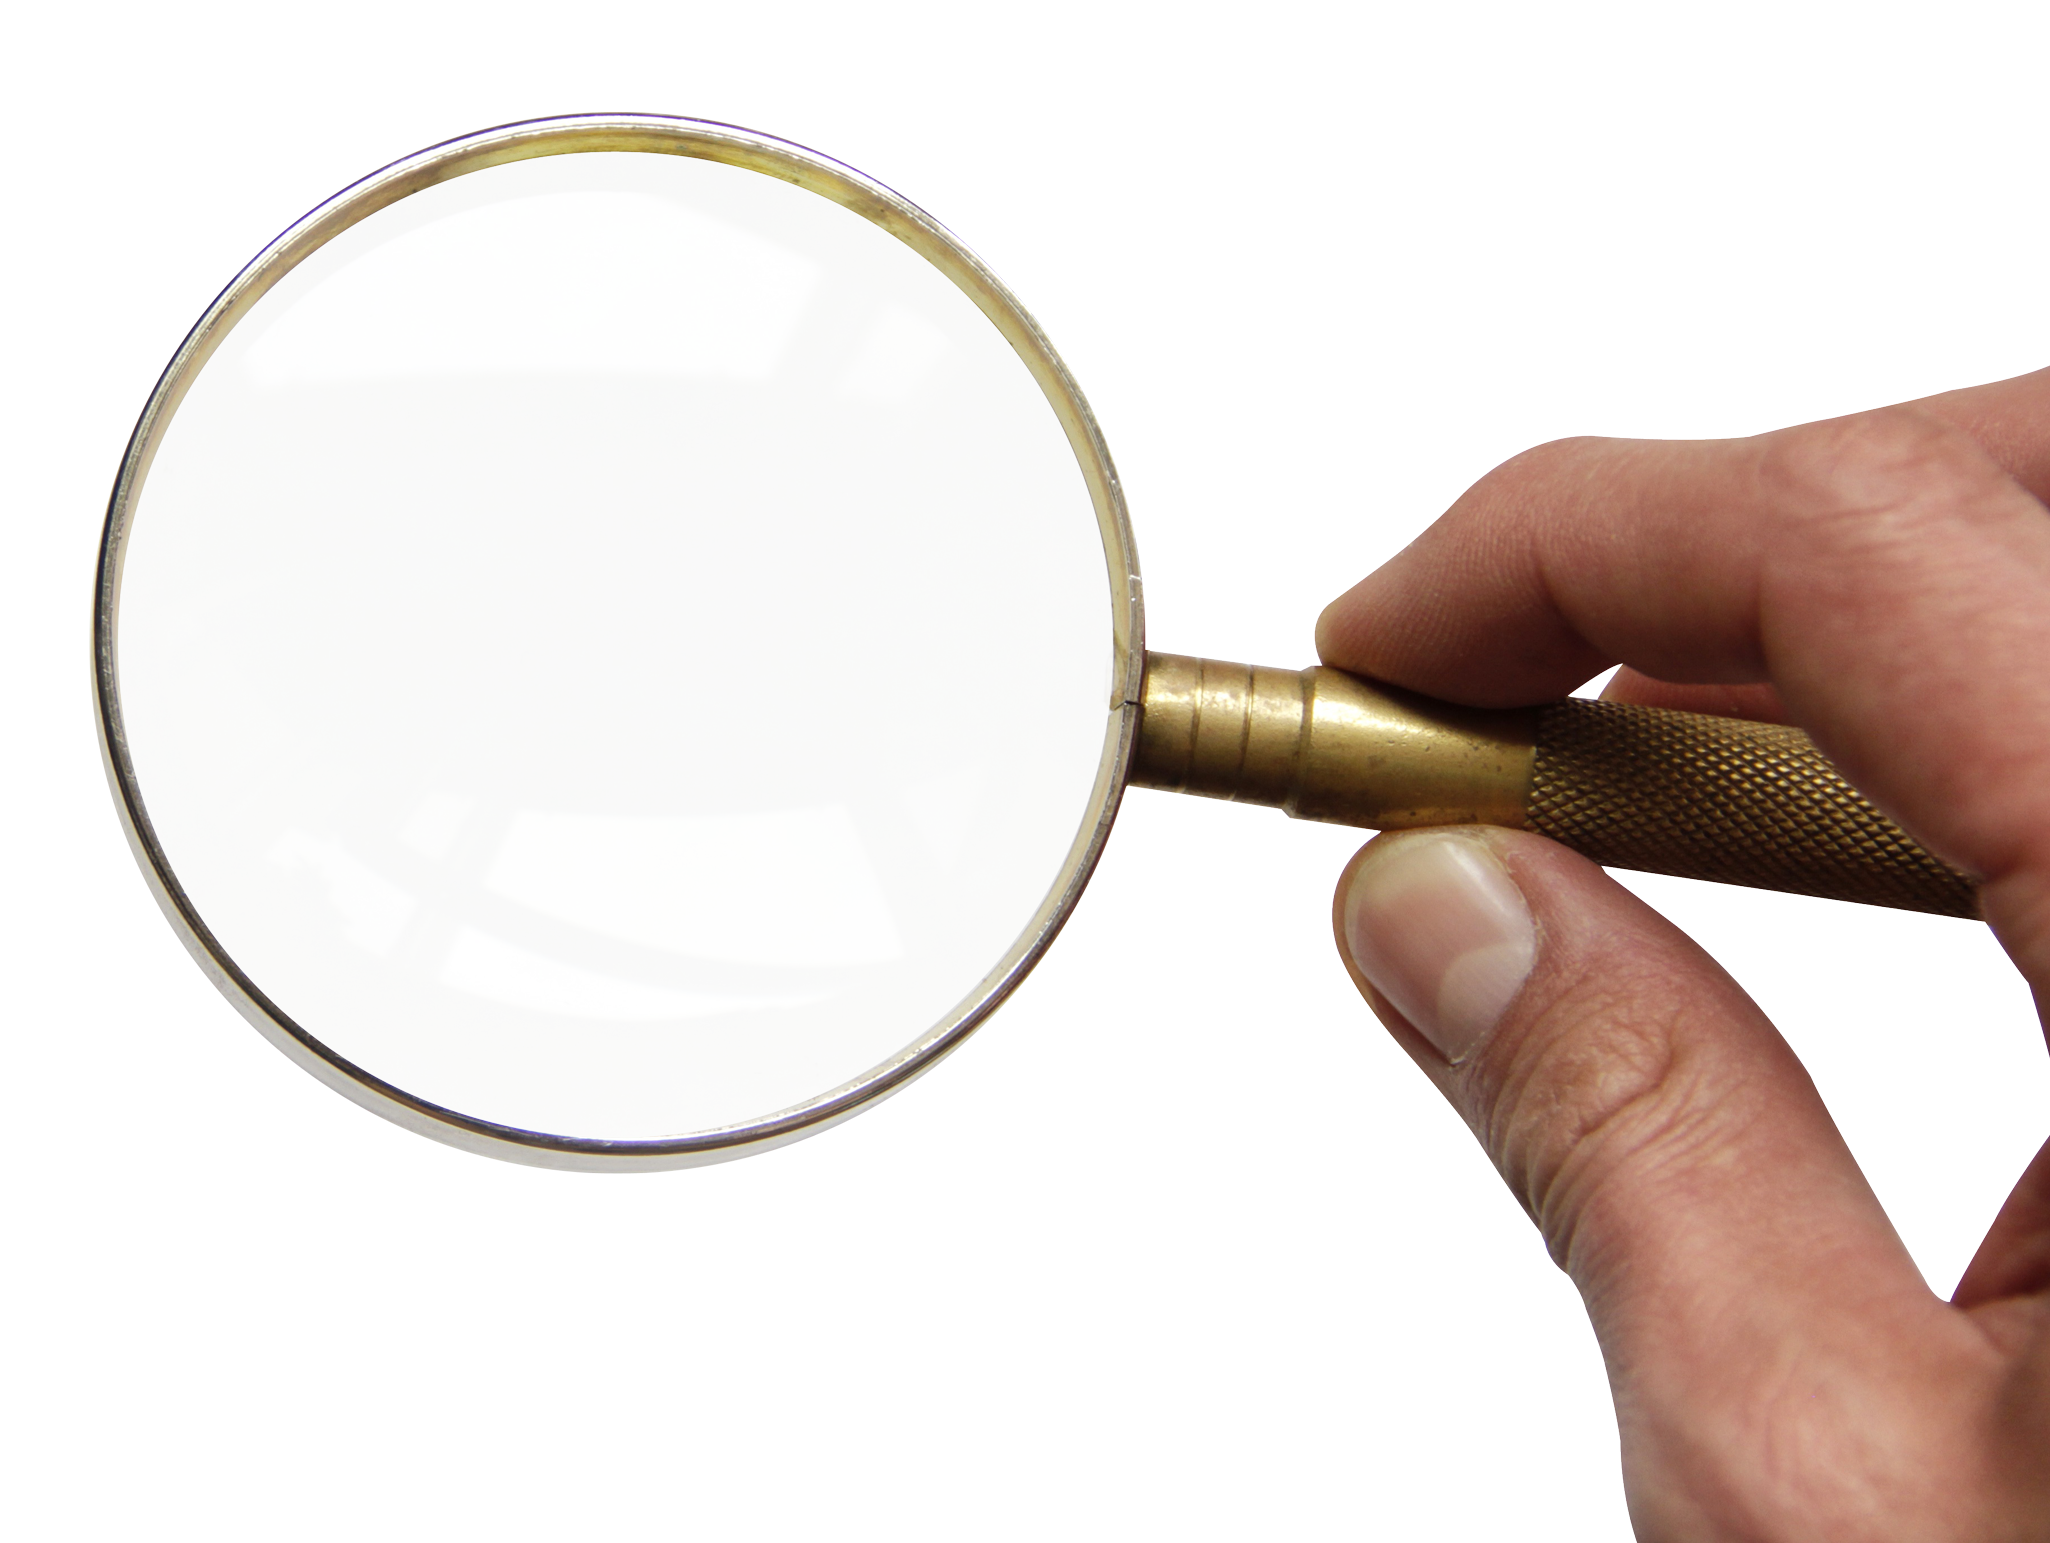 Magnifying glass png. Image purepng free transparent